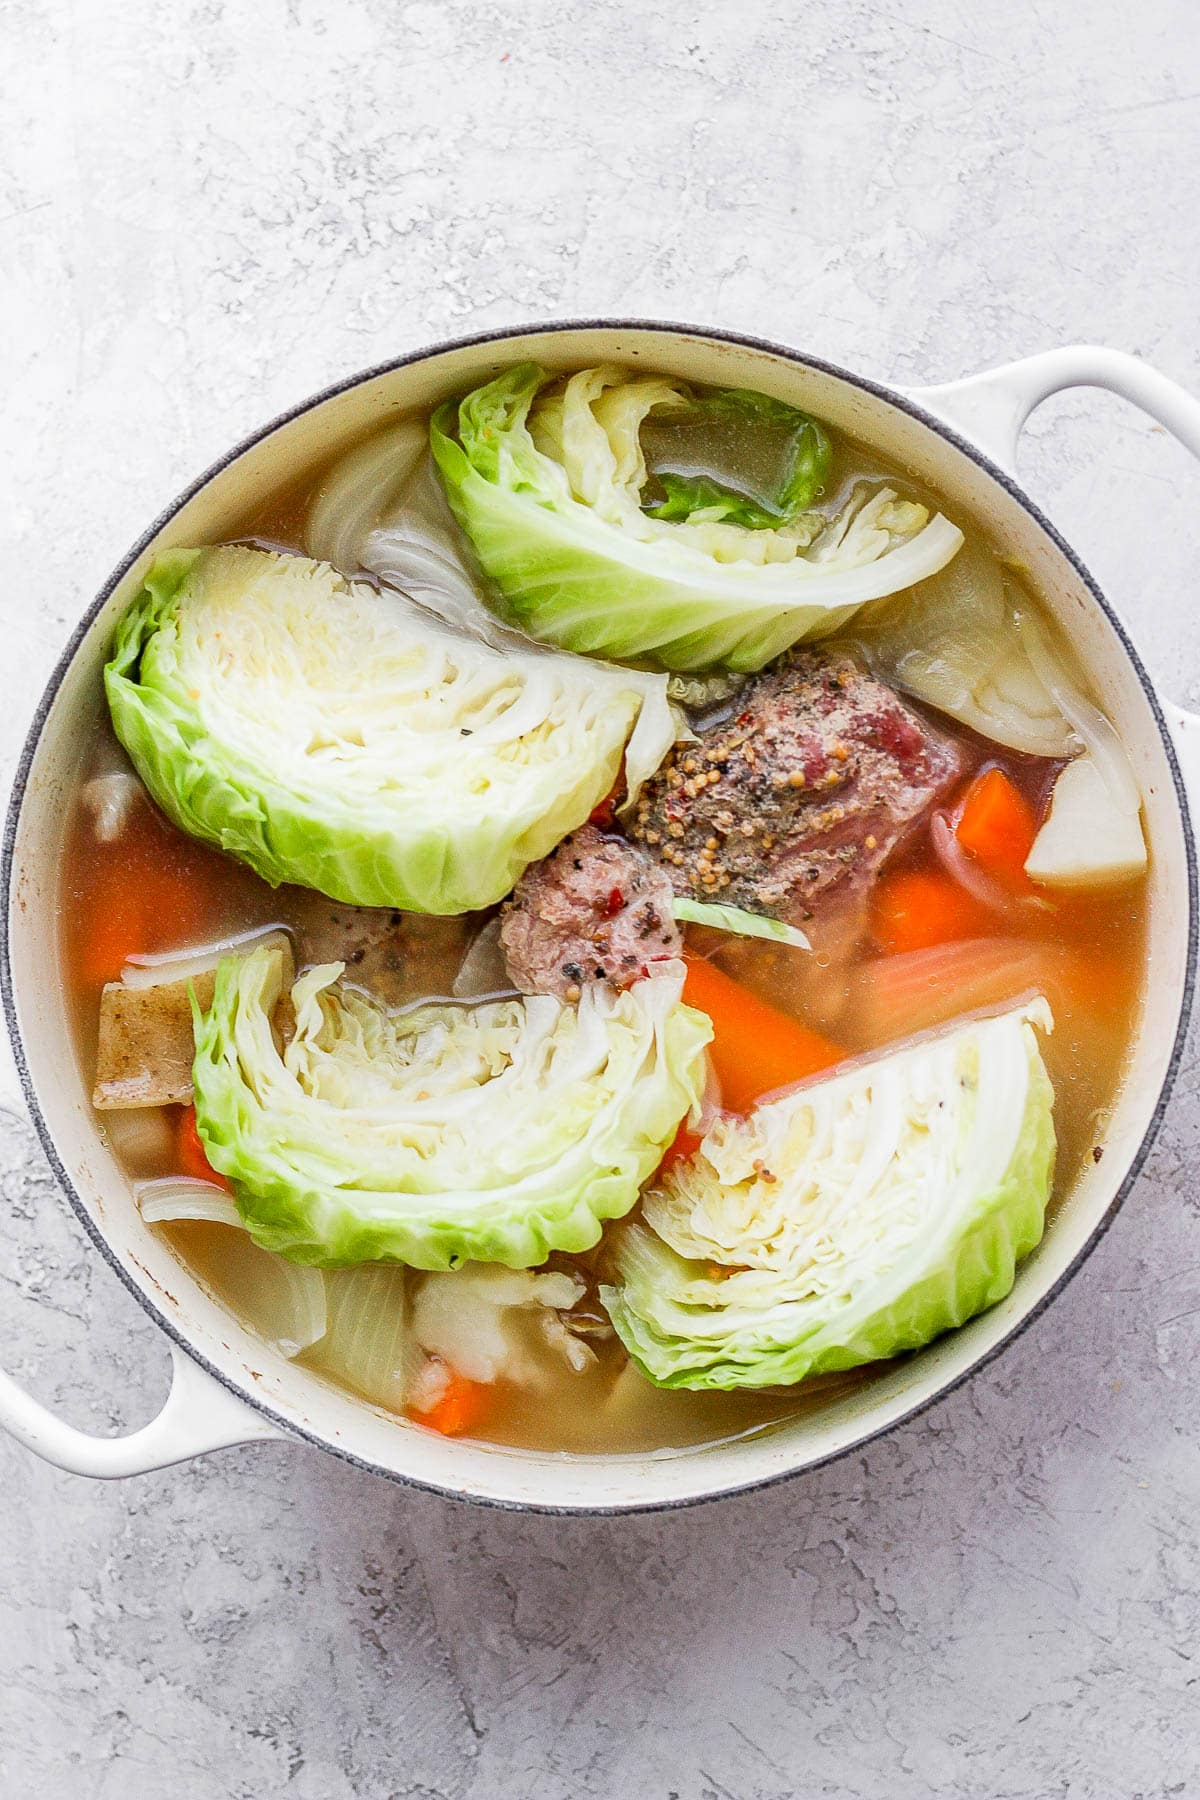 Dutch oven filled with corned beef and cabbage.